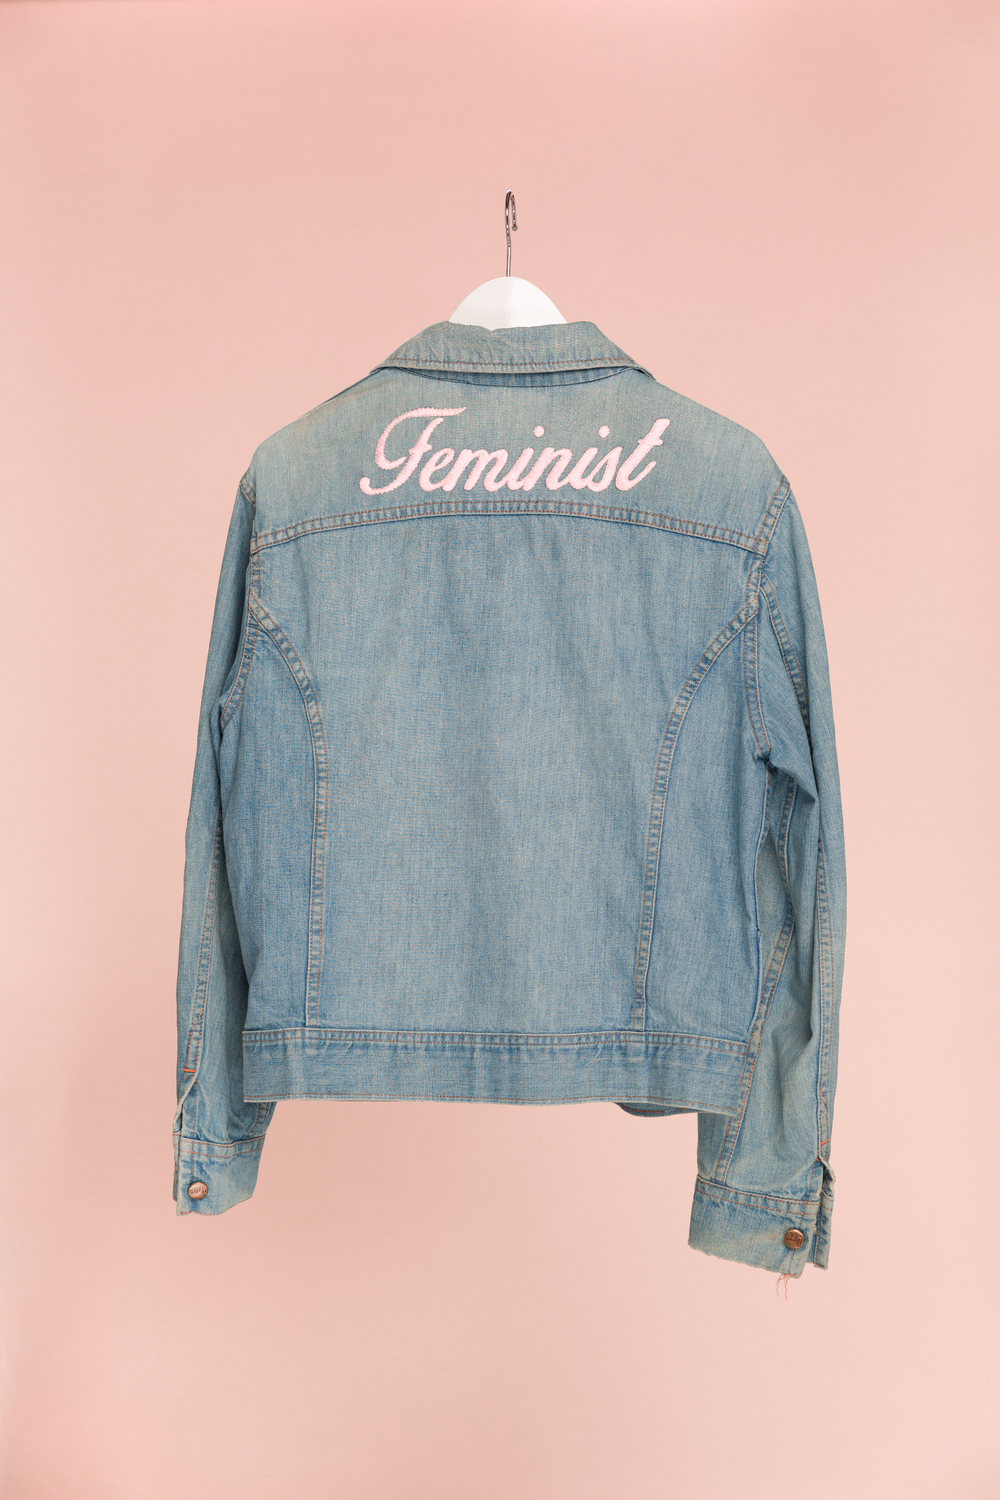 FEMINIST available in: Bubble - $240 Outline - $160 Cursive - $80